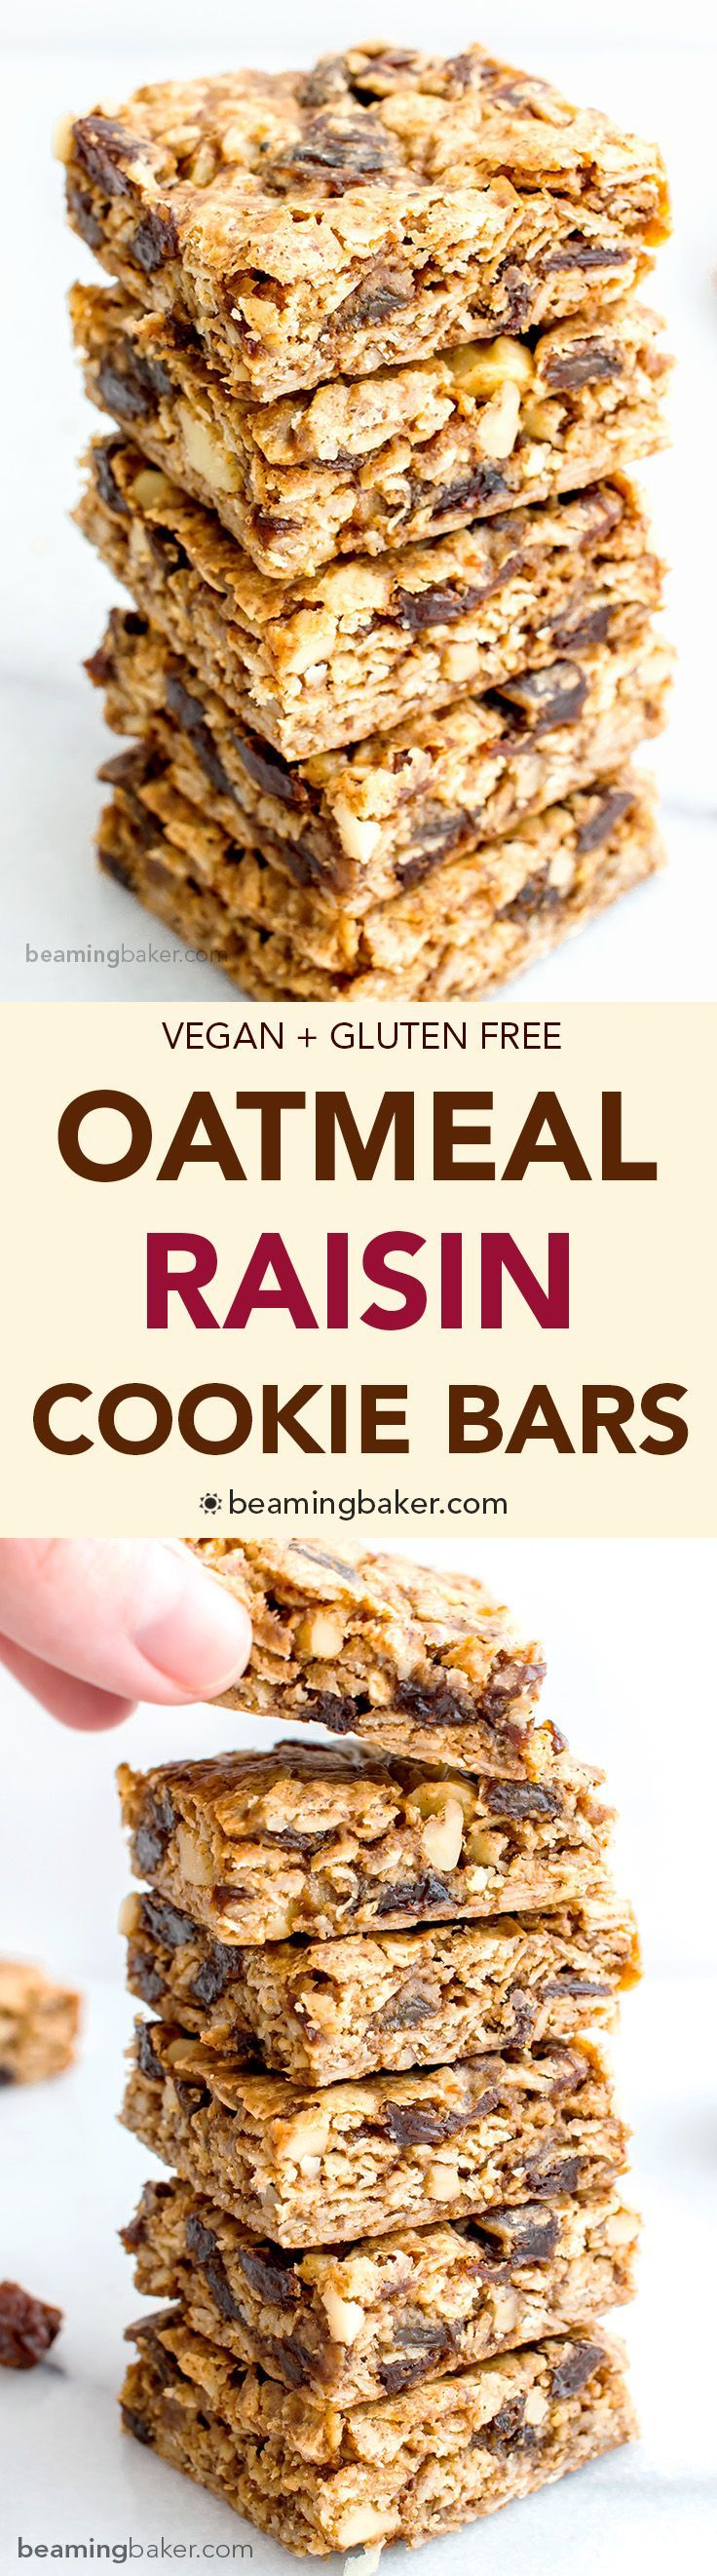 Oatmeal Raisin Cookie Bars (V+GF): an easy recipe for soft, chewy cookie bars made from simple ingredients, bursting with juicy raisins and walnuts. #Vegan #GlutenFree | http://BeamingBaker.com